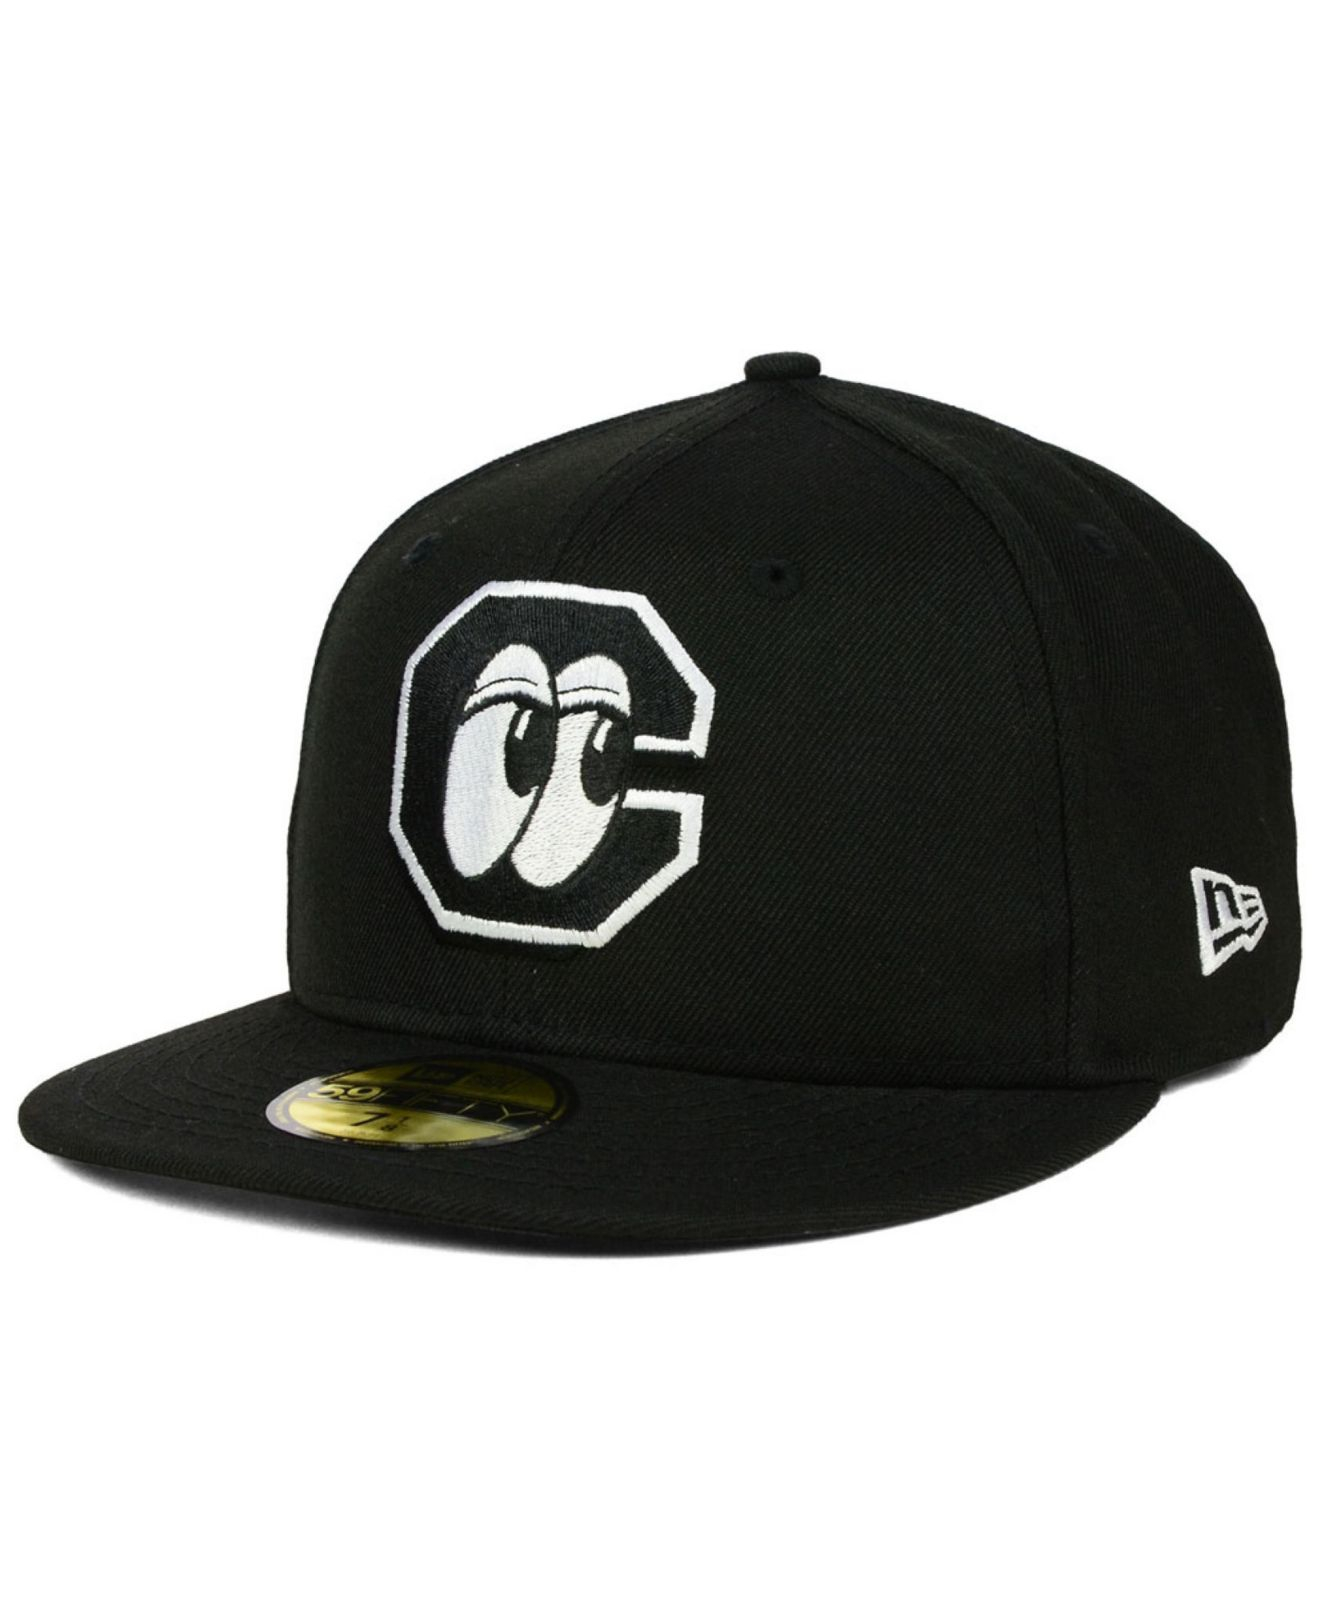 Chattanooga Lookouts Hat: Ktz Chattanooga Lookouts 59fifty Cap In Black For Men